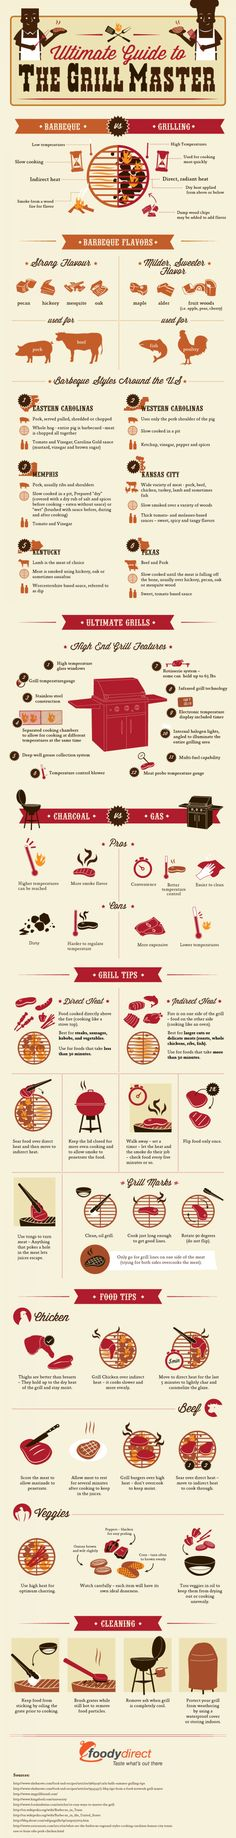 The ultimate guide to the grill master [infographic]